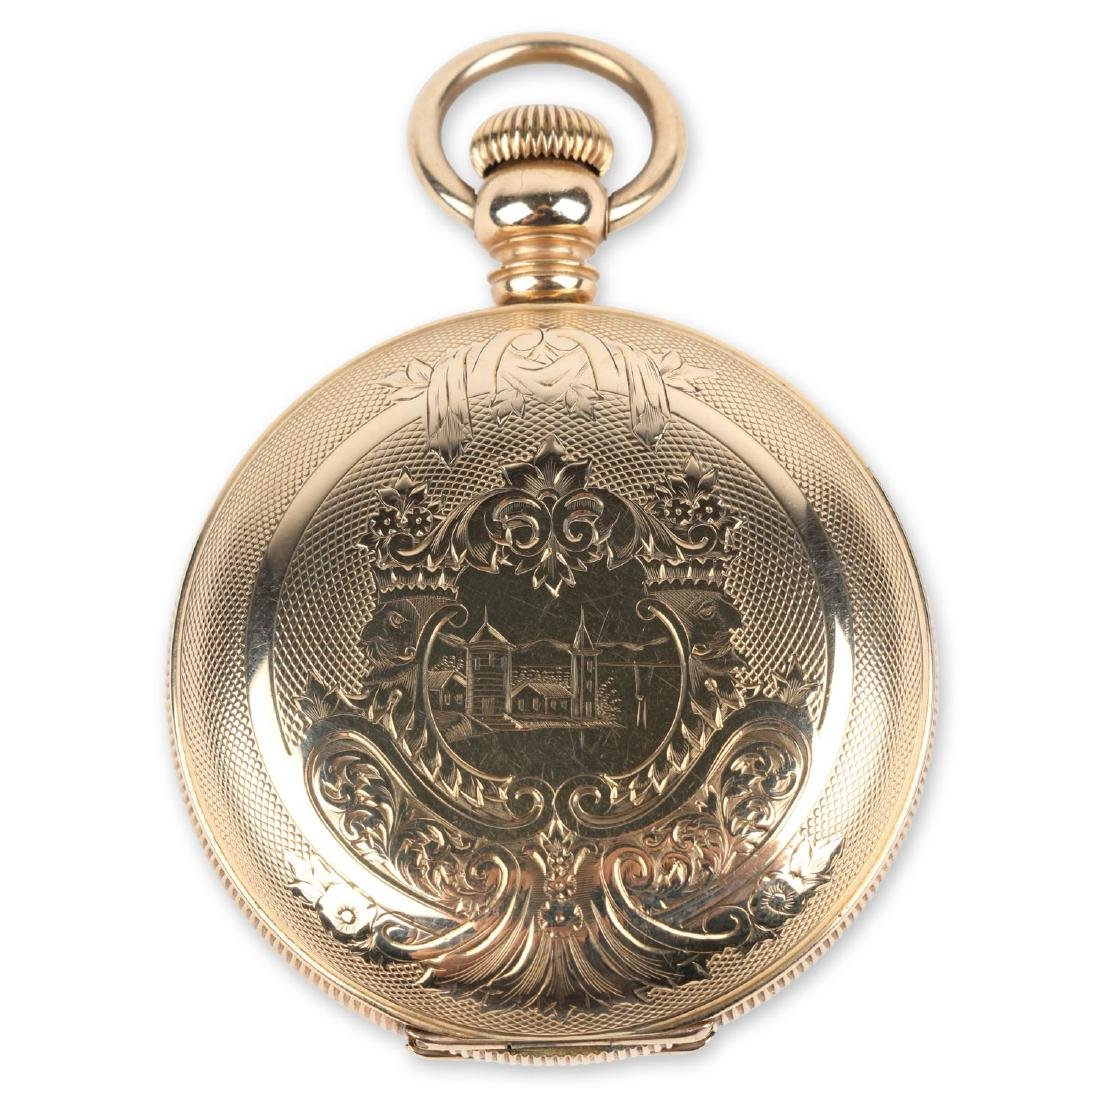 18S 11J Elgin Nat'l Key-Wind Full Hunter Pocket Watch